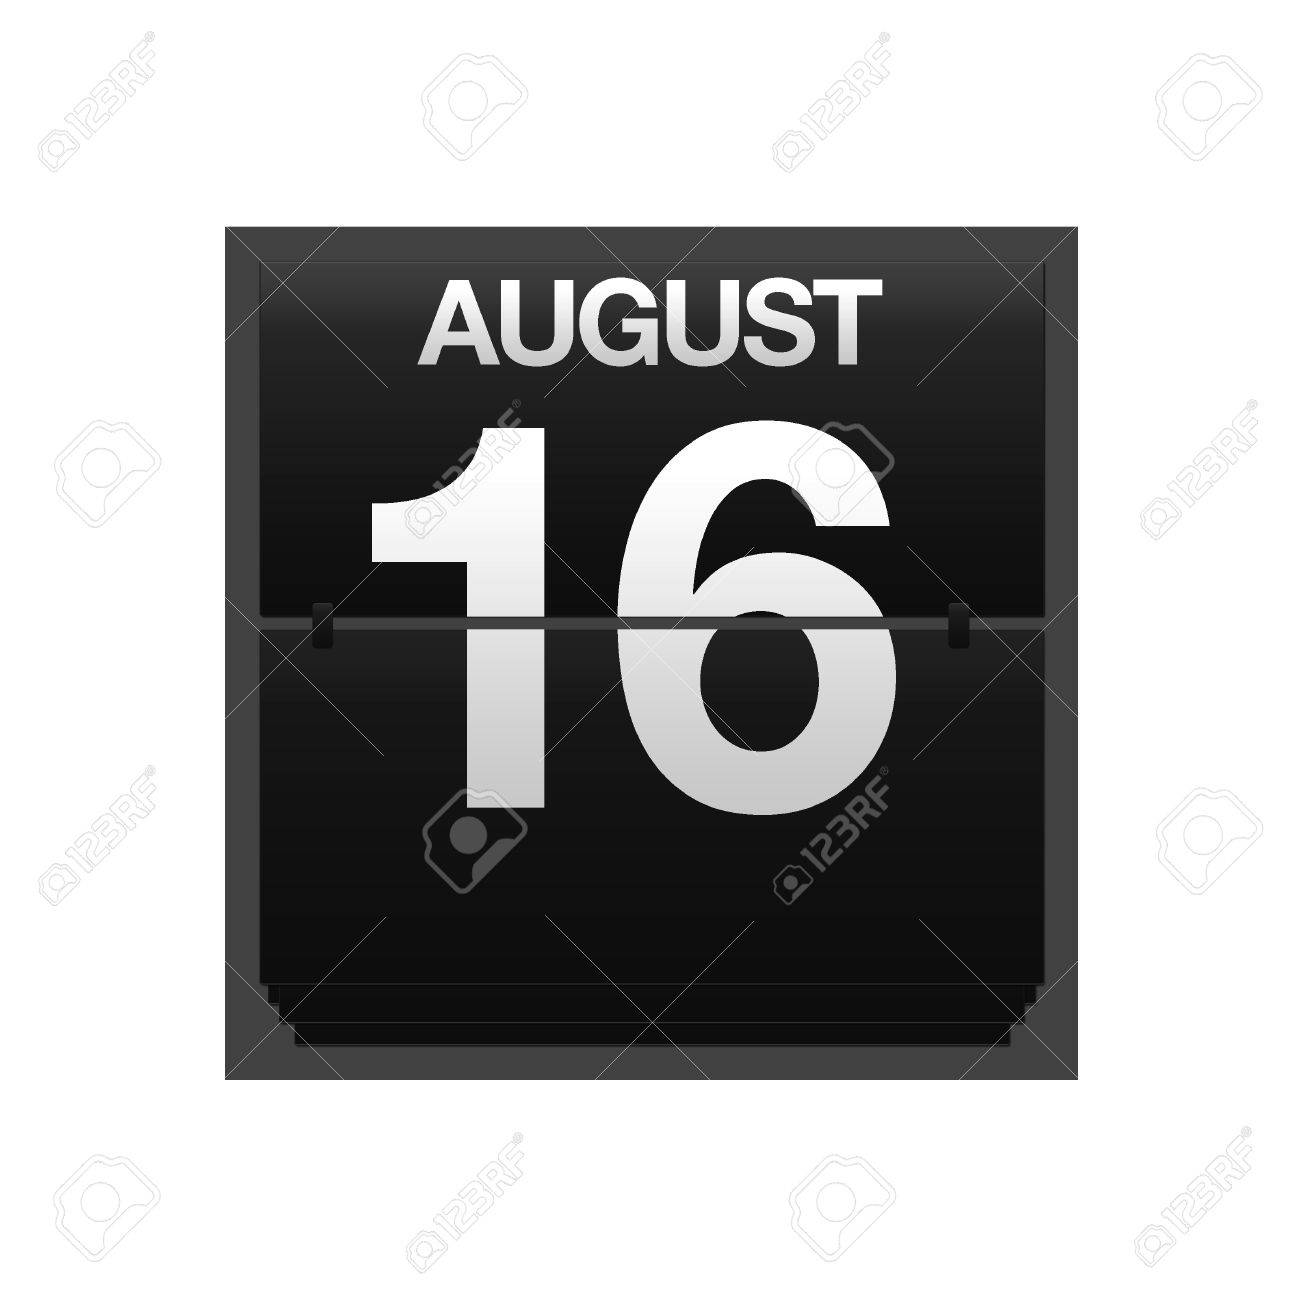 Illustration with a counter calendar august 16 Stock Illustration - 15707452